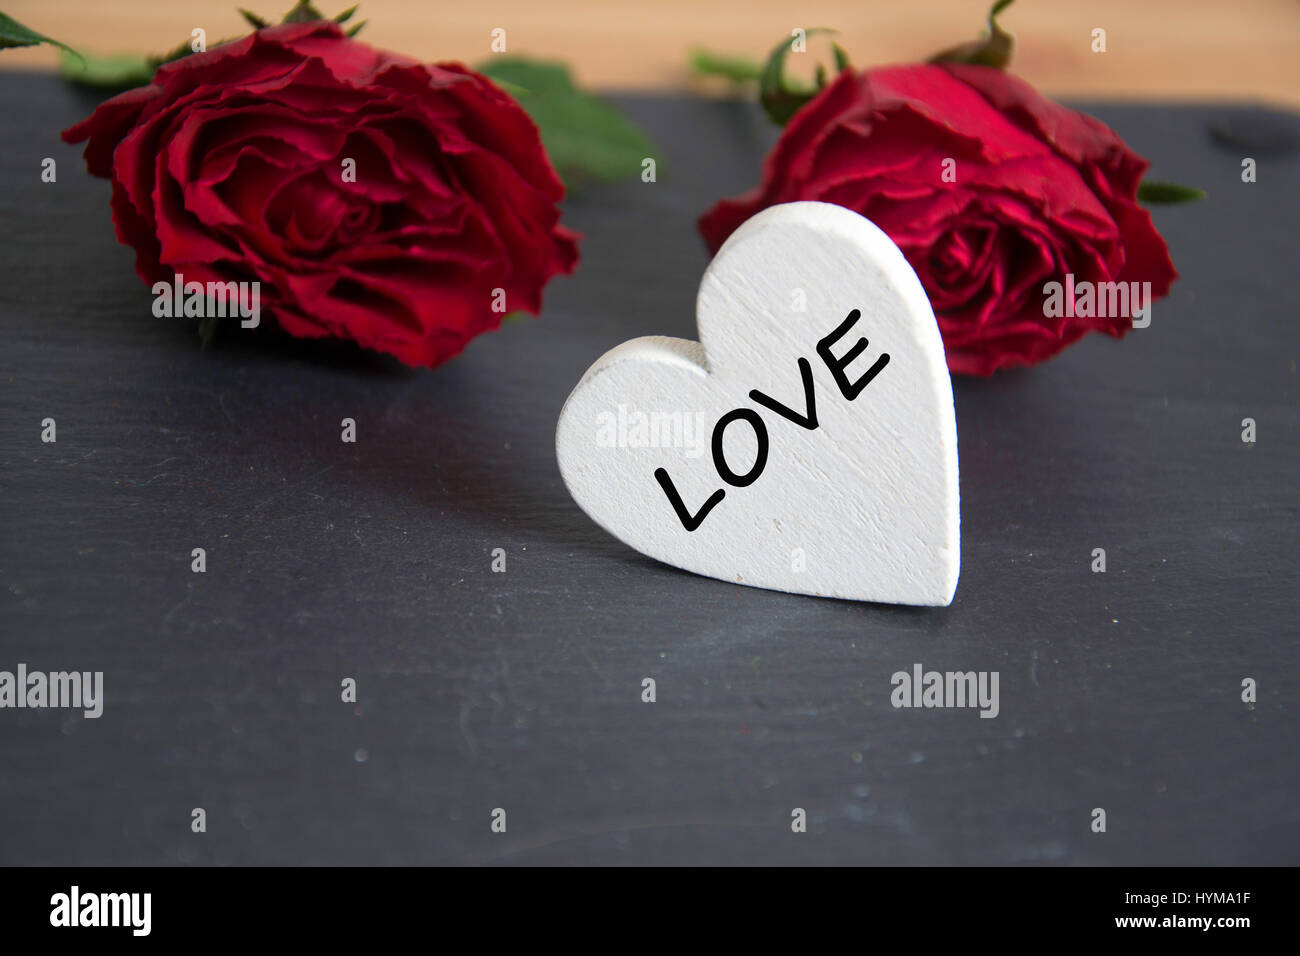 Nice Bakcground With Roses Symbol For Love Stock Photo 137515211